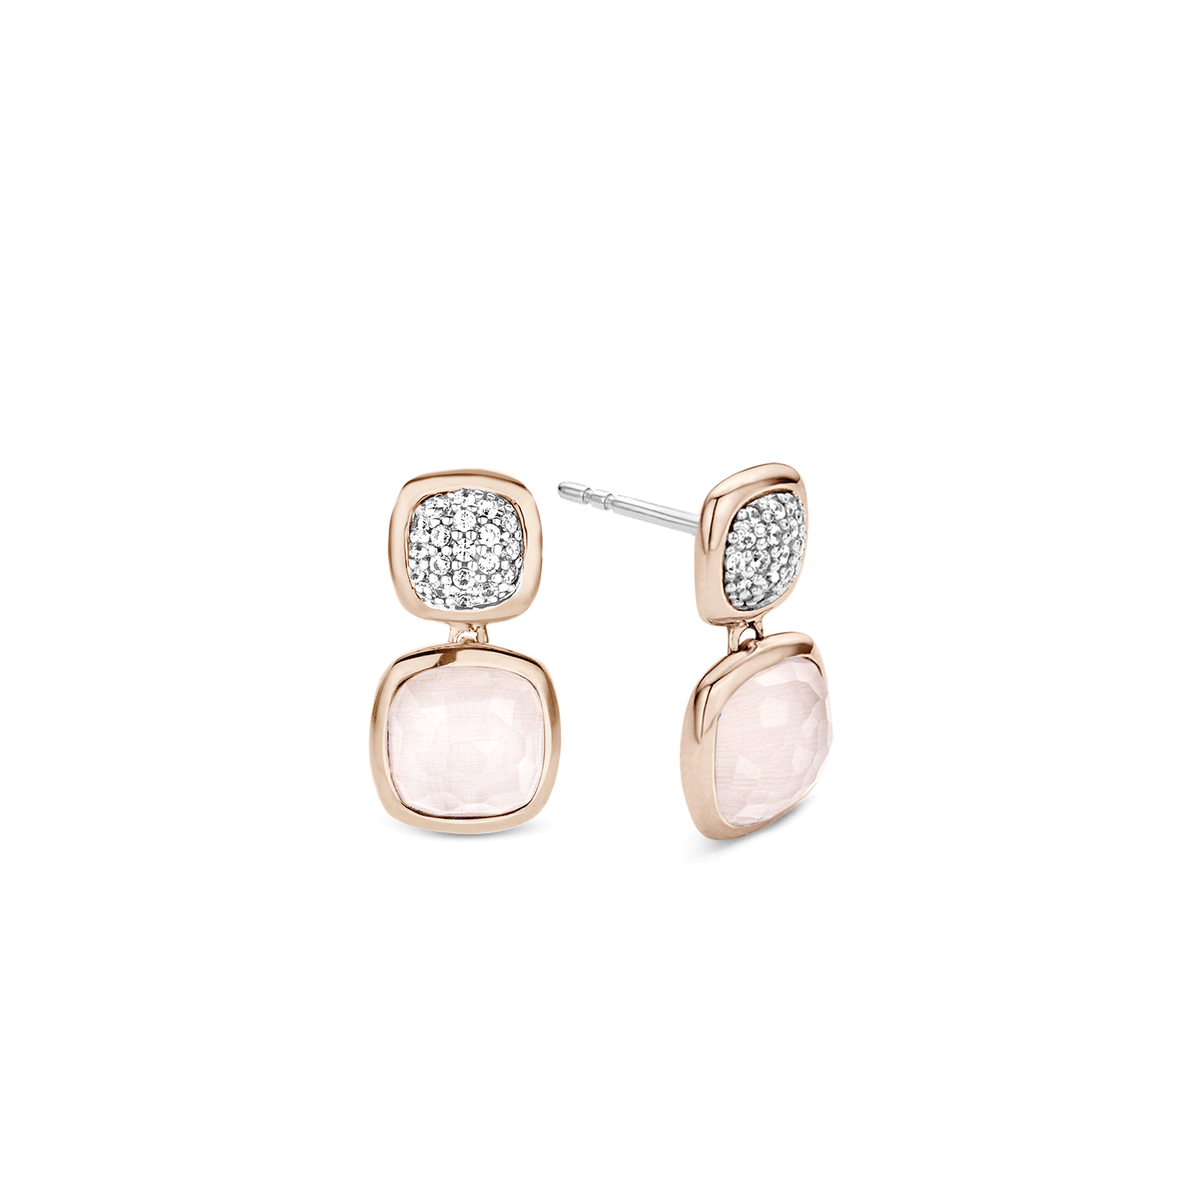 TI SENTO - Milano Earrings 7735LP